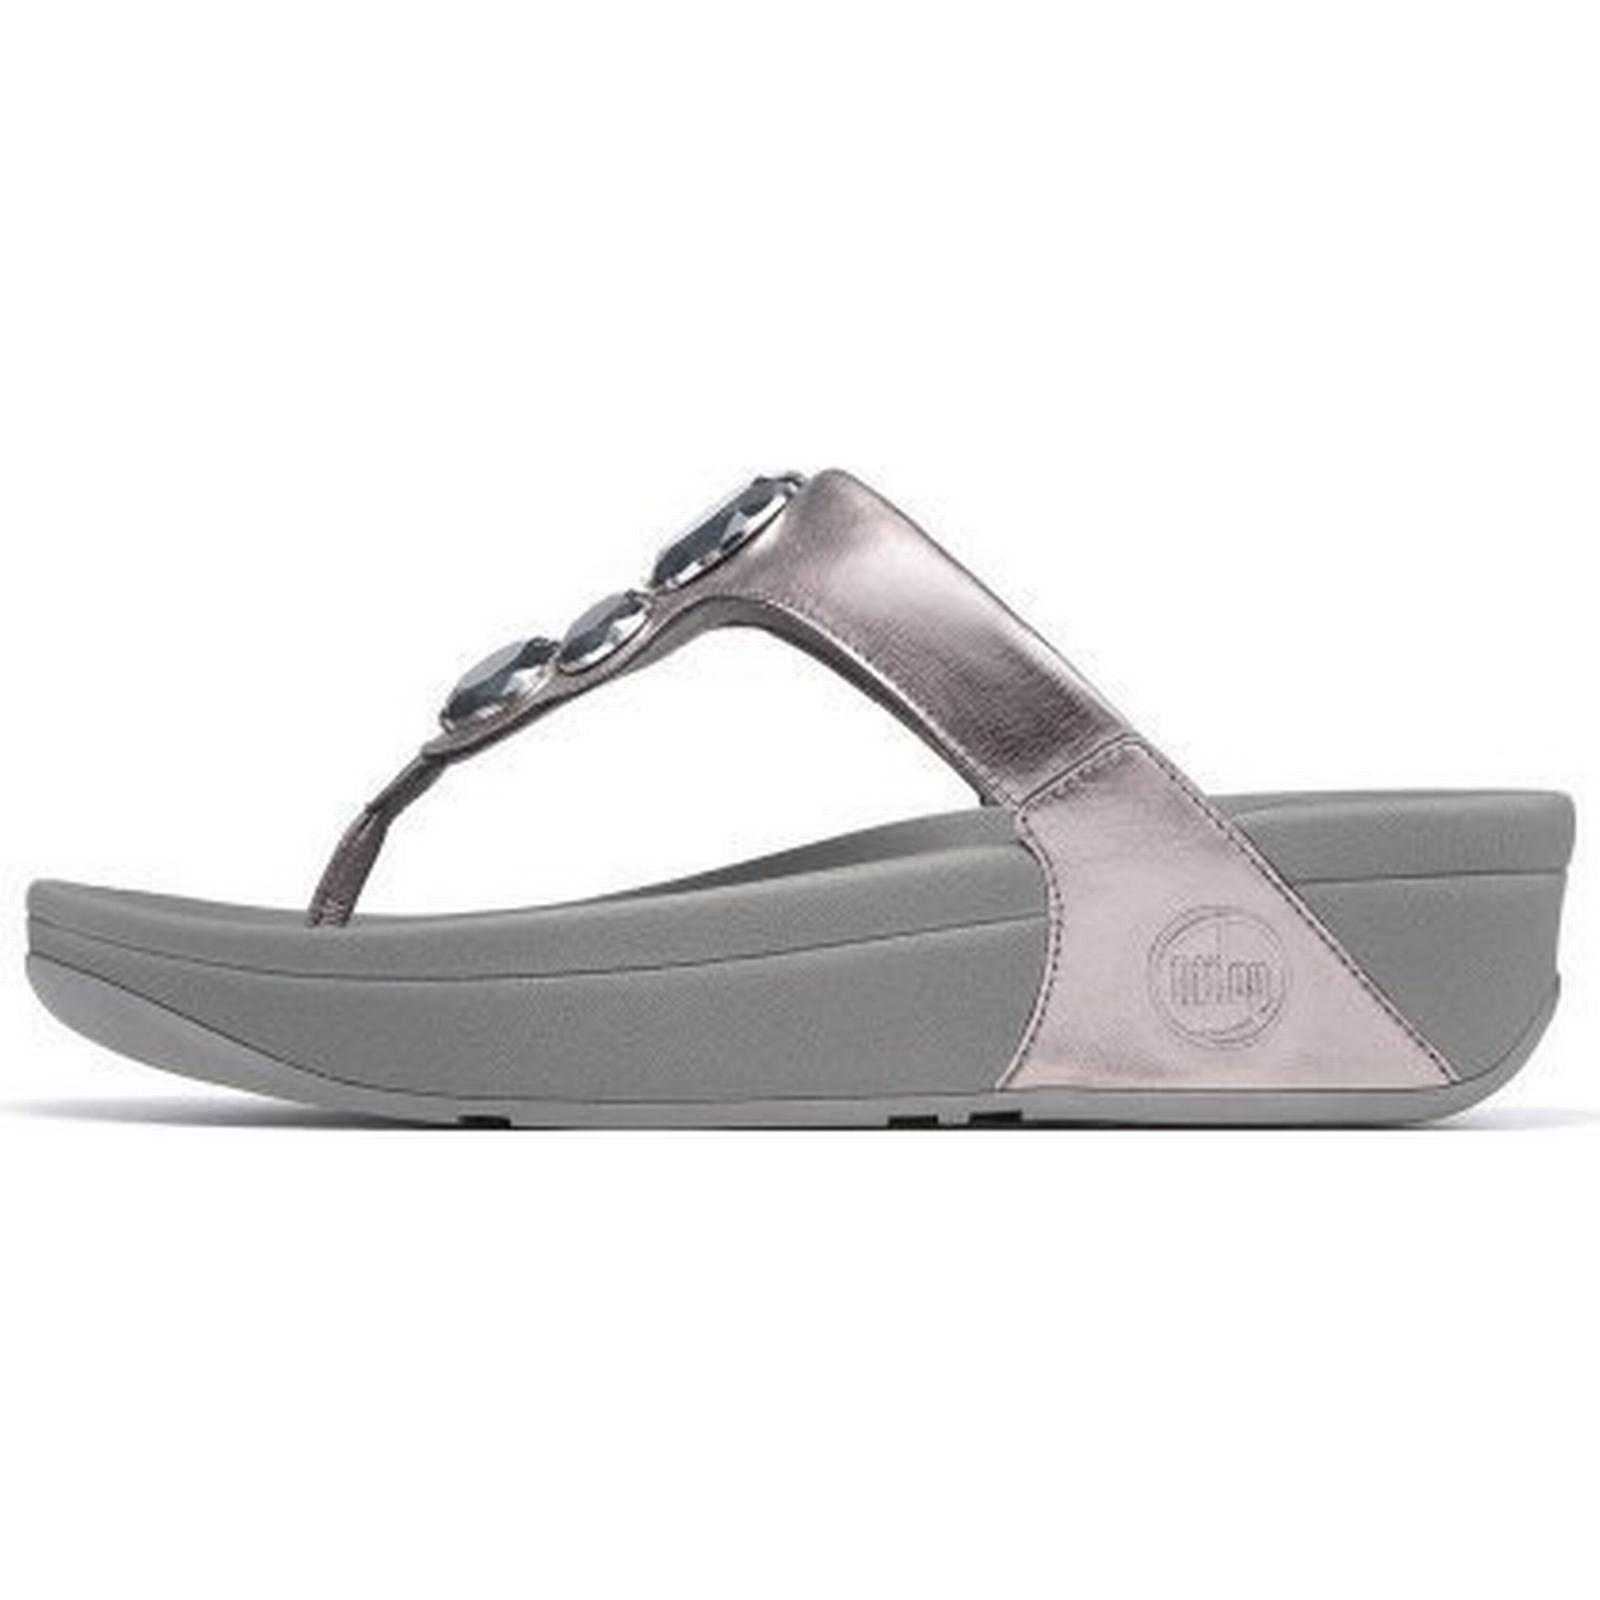 FitFlop PEWTER Lunetta Womens Sandals In Pewter Size: 8, Colour: PEWTER FitFlop 4bee05